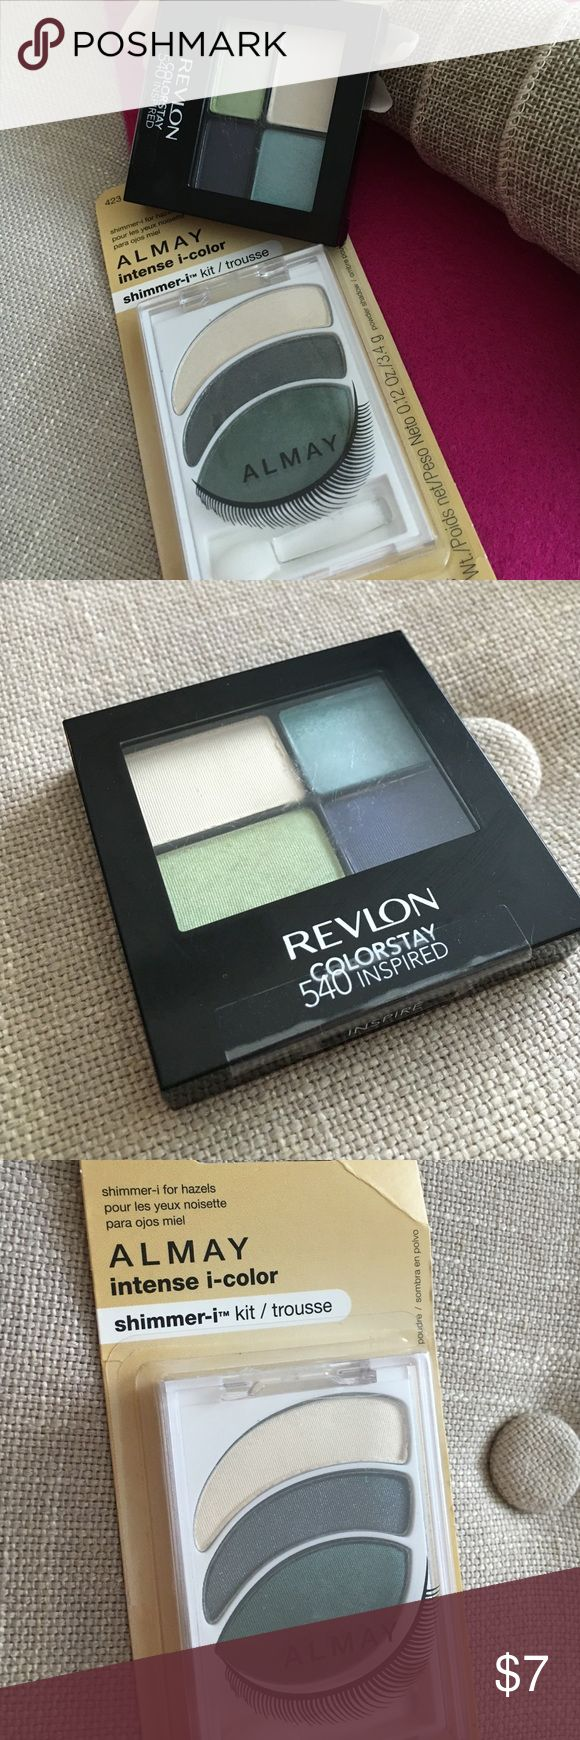 """SOLD FREE GIFT Revlon Almay Eyeshadow Bundle This Revlon Almay Eyeshadow Bundle includes 1 Revlon Colorstay eyeshadow quad in """"Inspired"""" and one Almay intense i-color kit in """"shimmer-i for hazels."""" Both eyeshadows are brand new never been opened. Haven't worn eyeshadow in awhile so it's best they go to home where they'll get some use! Revlon Makeup Eyeshadow"""